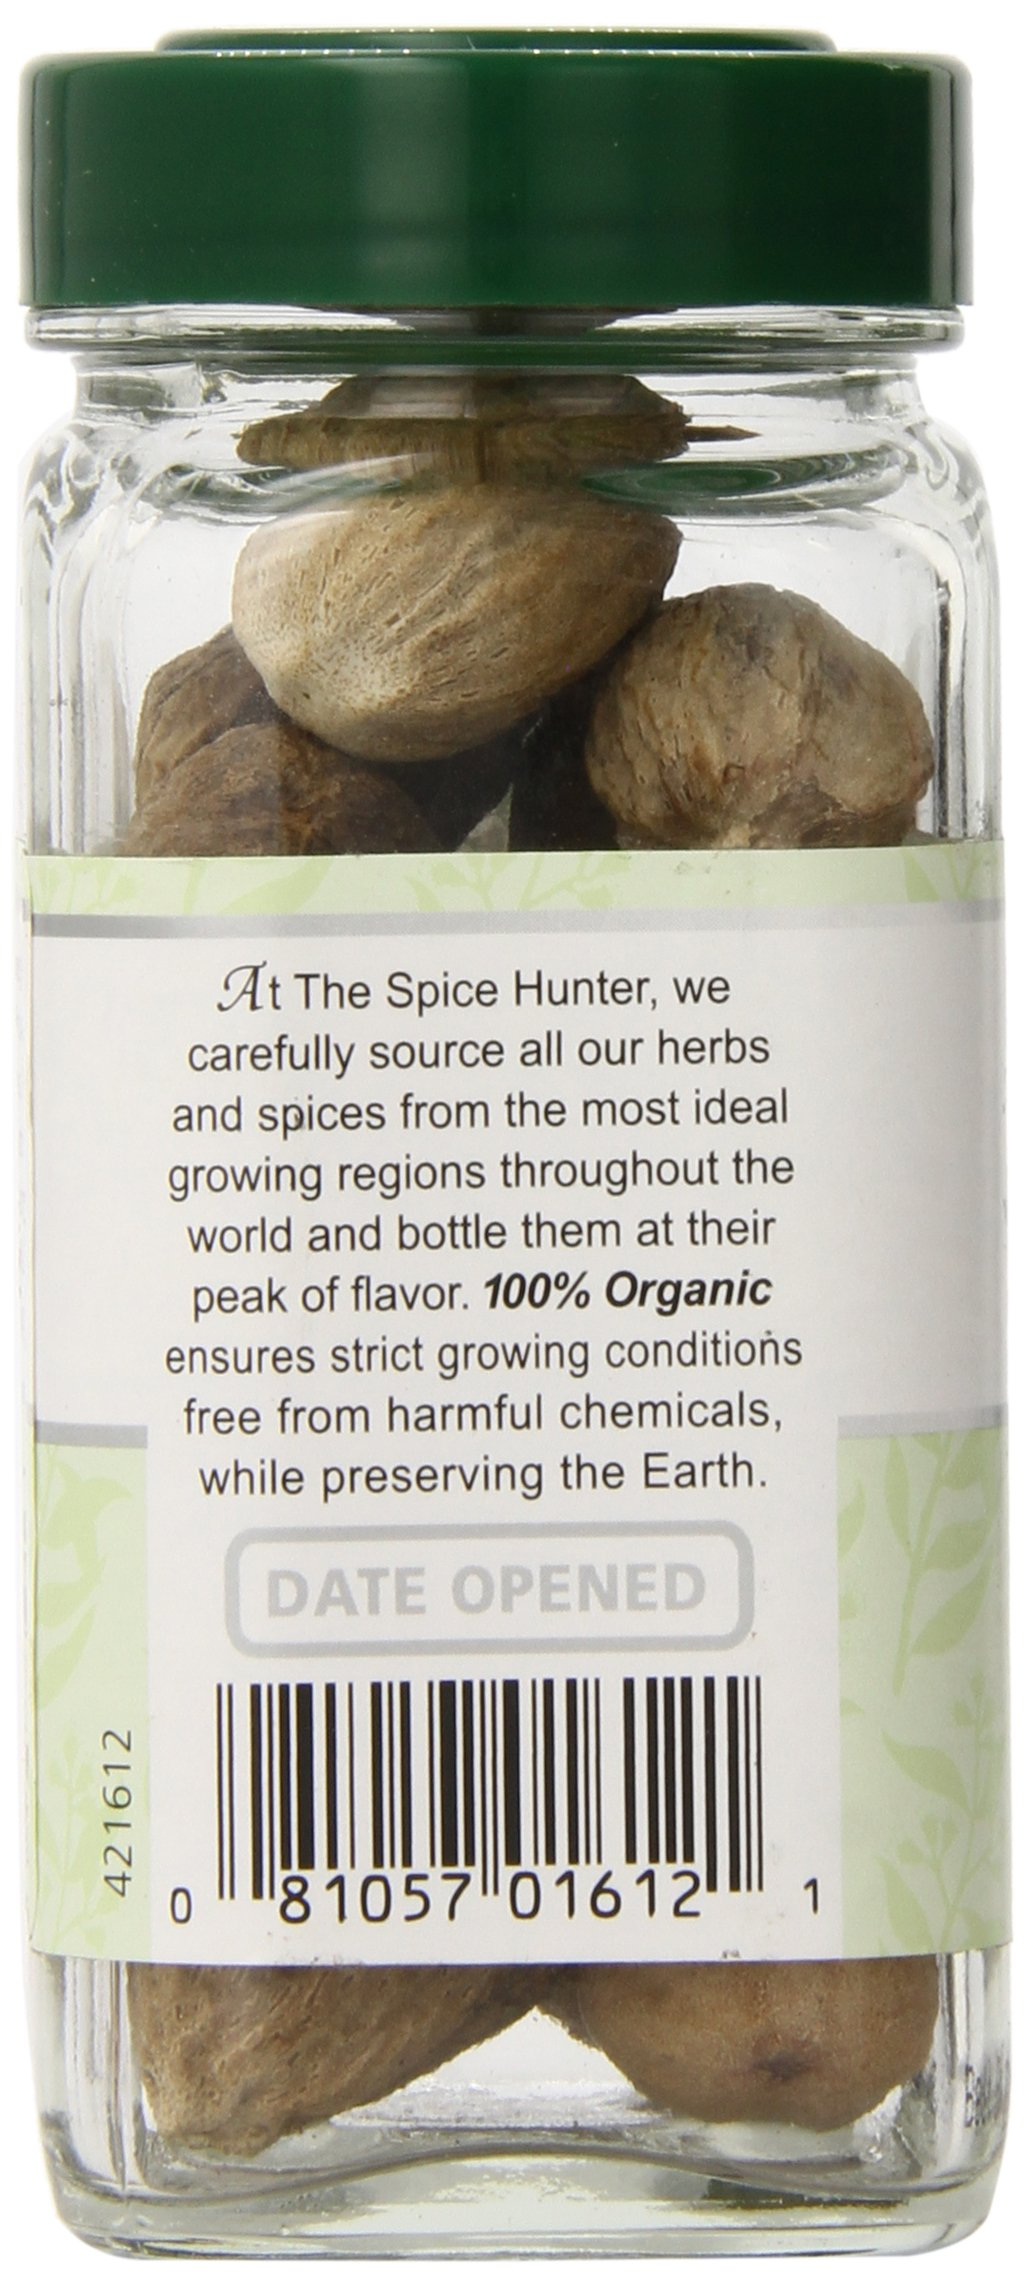 The Spice Hunter Organic Nutmeg, Whole, 1.8 oz. jar by Spice Hunter (Image #3)